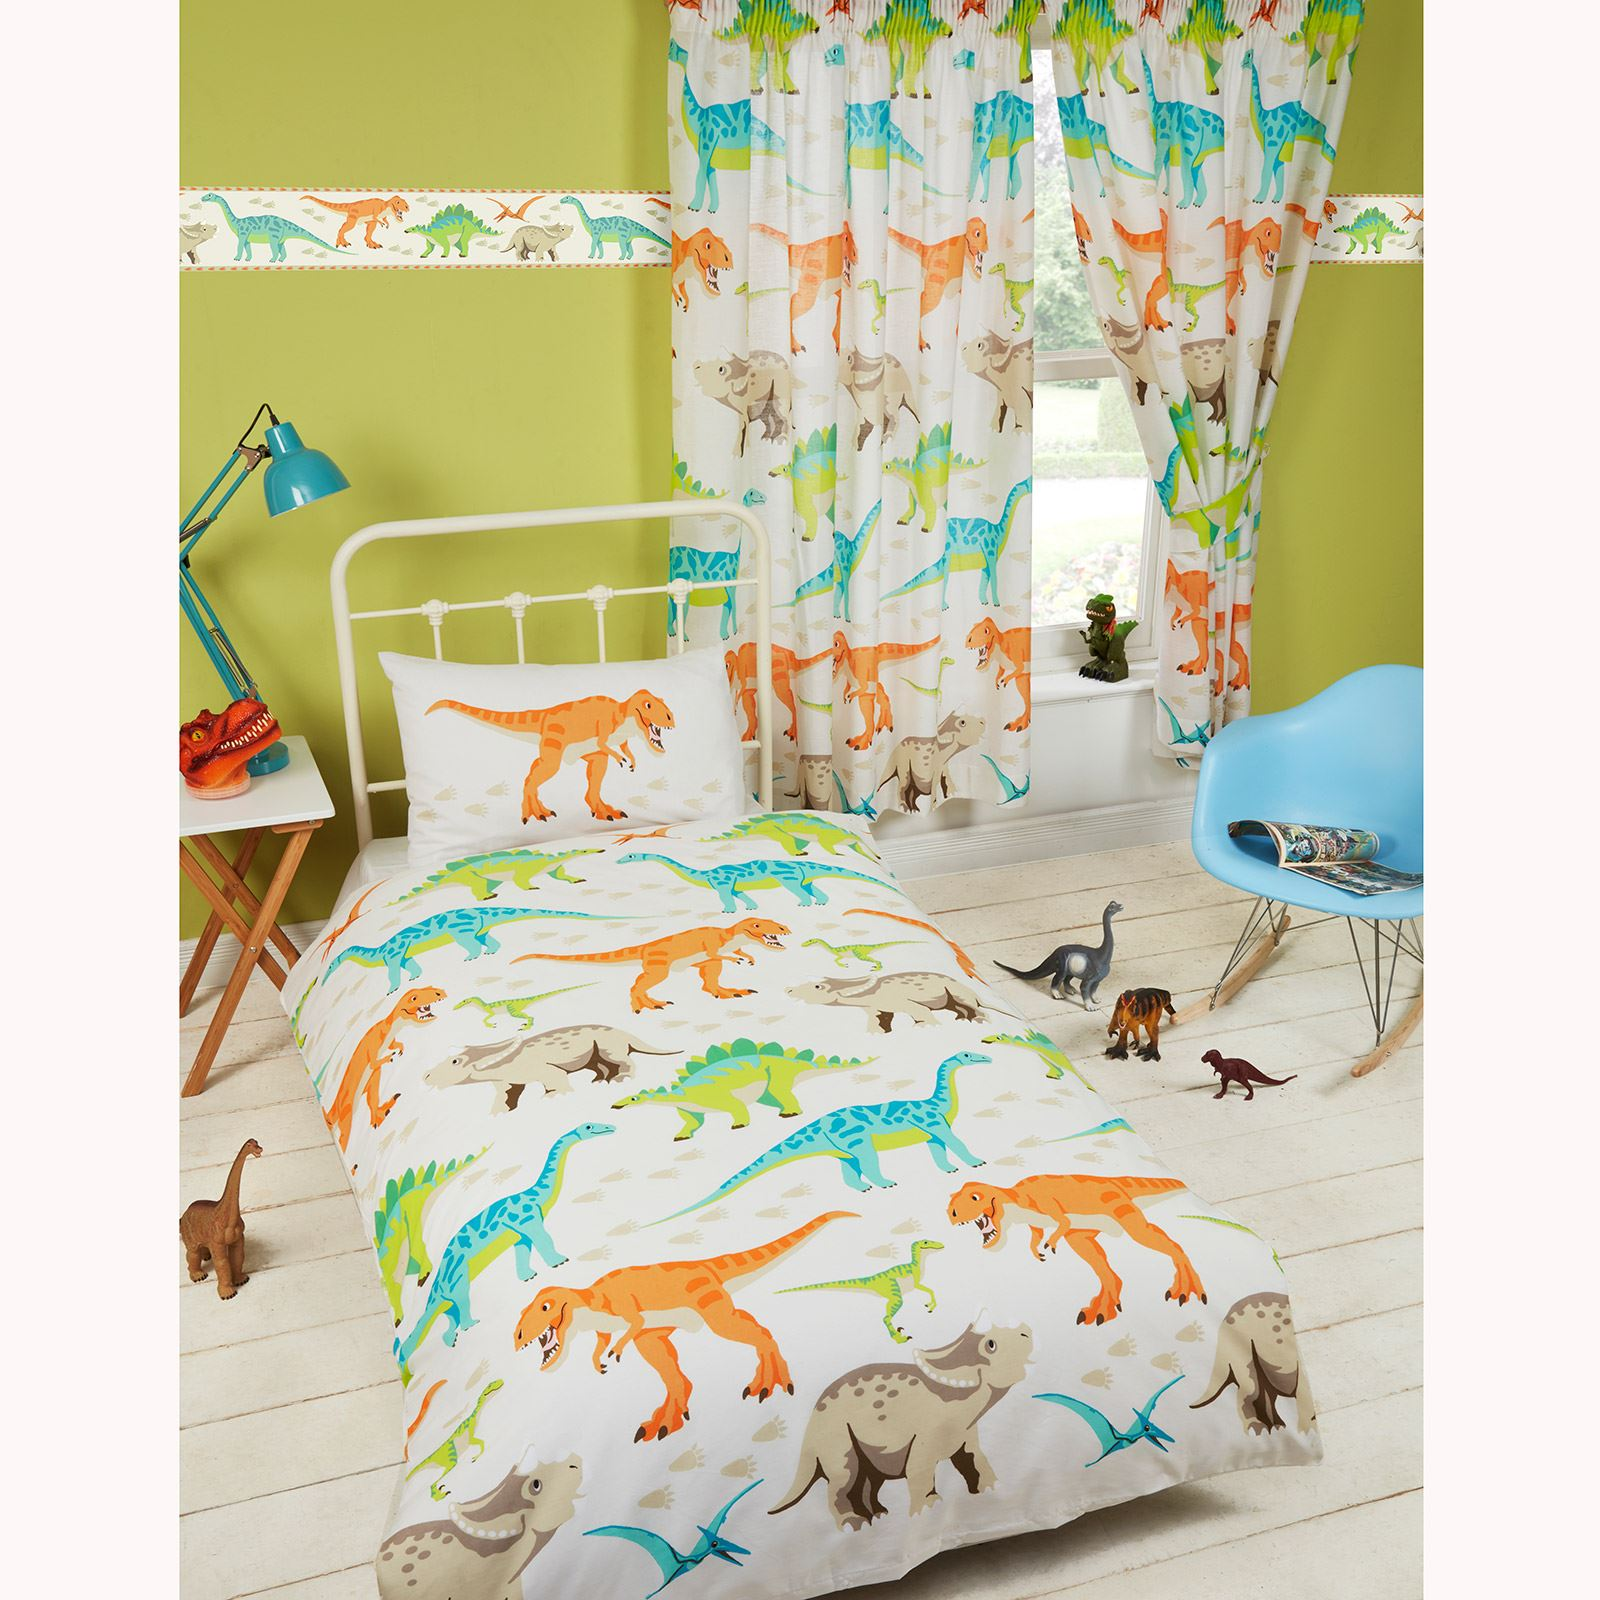 Home 187 unicorn quilt cover set return to previous page - Boys Themed Duvet Quilt Covers Bedding Various Designs